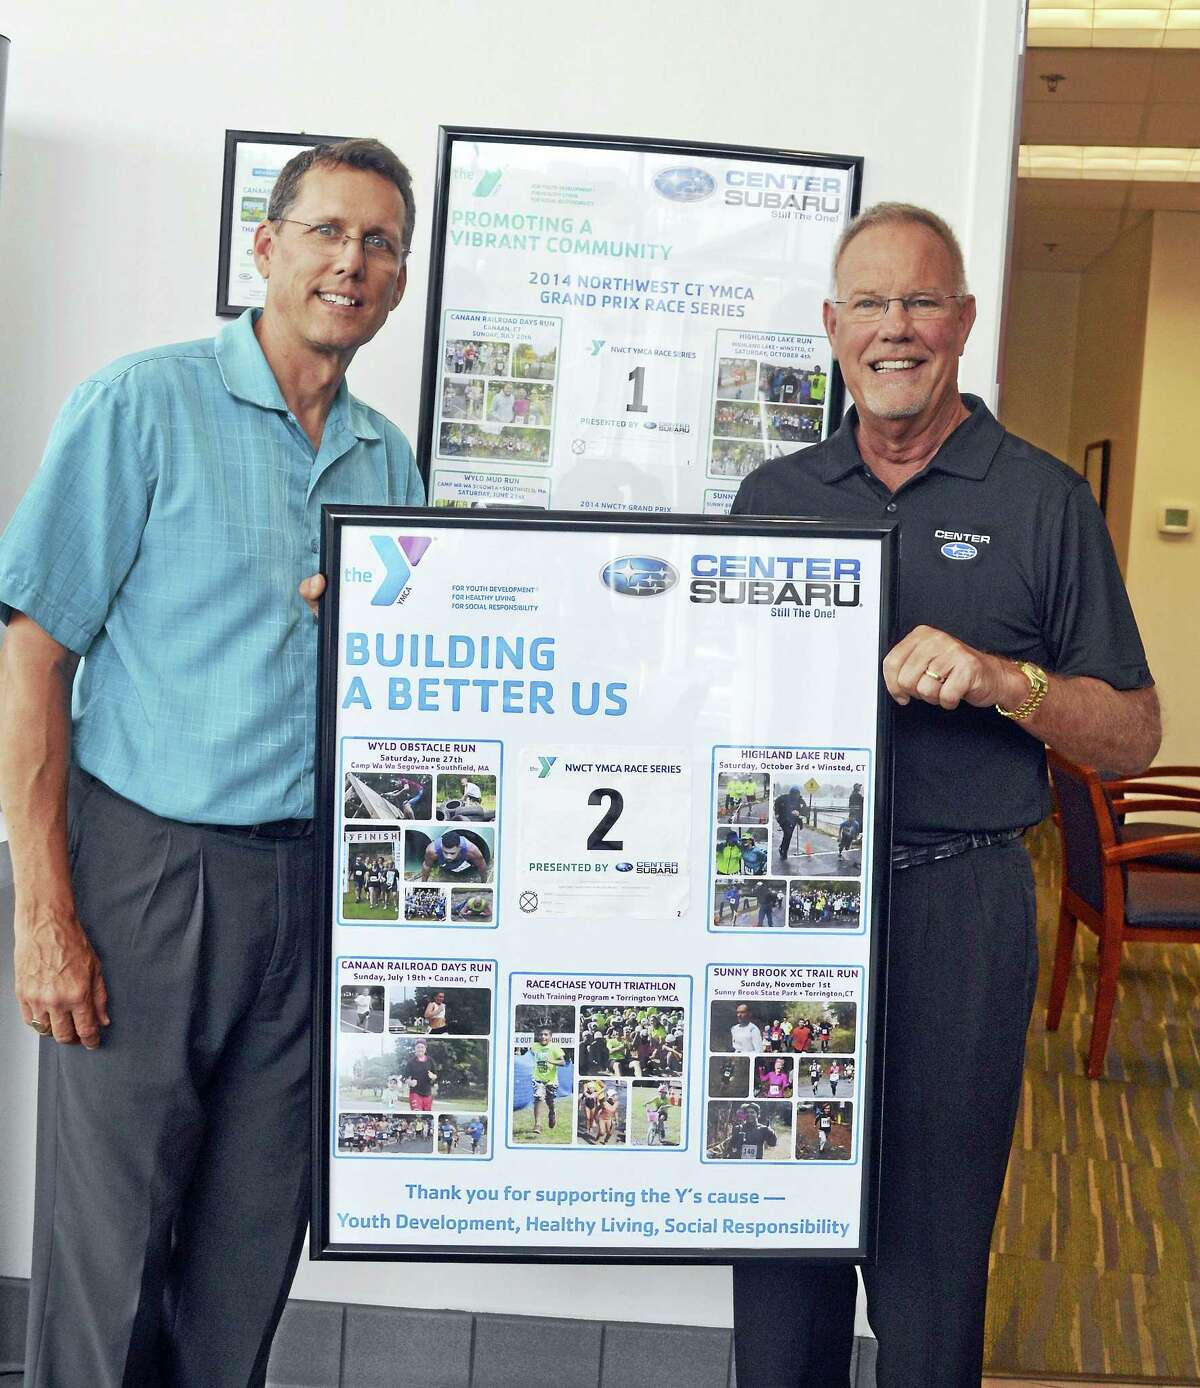 """Contributed photo Northwest CT YMCA CEO Greg Brisco, left, presented a special gift to Center Subaru owner Phil Porter, right, July 28 at the dealership on Winsted Road in Torrington. The Y has been chosen as the dealership's Hometown Charity for its annual """"Share the Love"""" campaign the past three years. In total, Center Subaru has donated $94,000 to the Y through the campaign - money put toward providing financial aid to assure that all children and families can participate and benefit in the Y's programs and services. The framed picture highlights the races in the Y's 2015 Grand Prix Race Series in which Center Subaru was the presenting sponsor."""